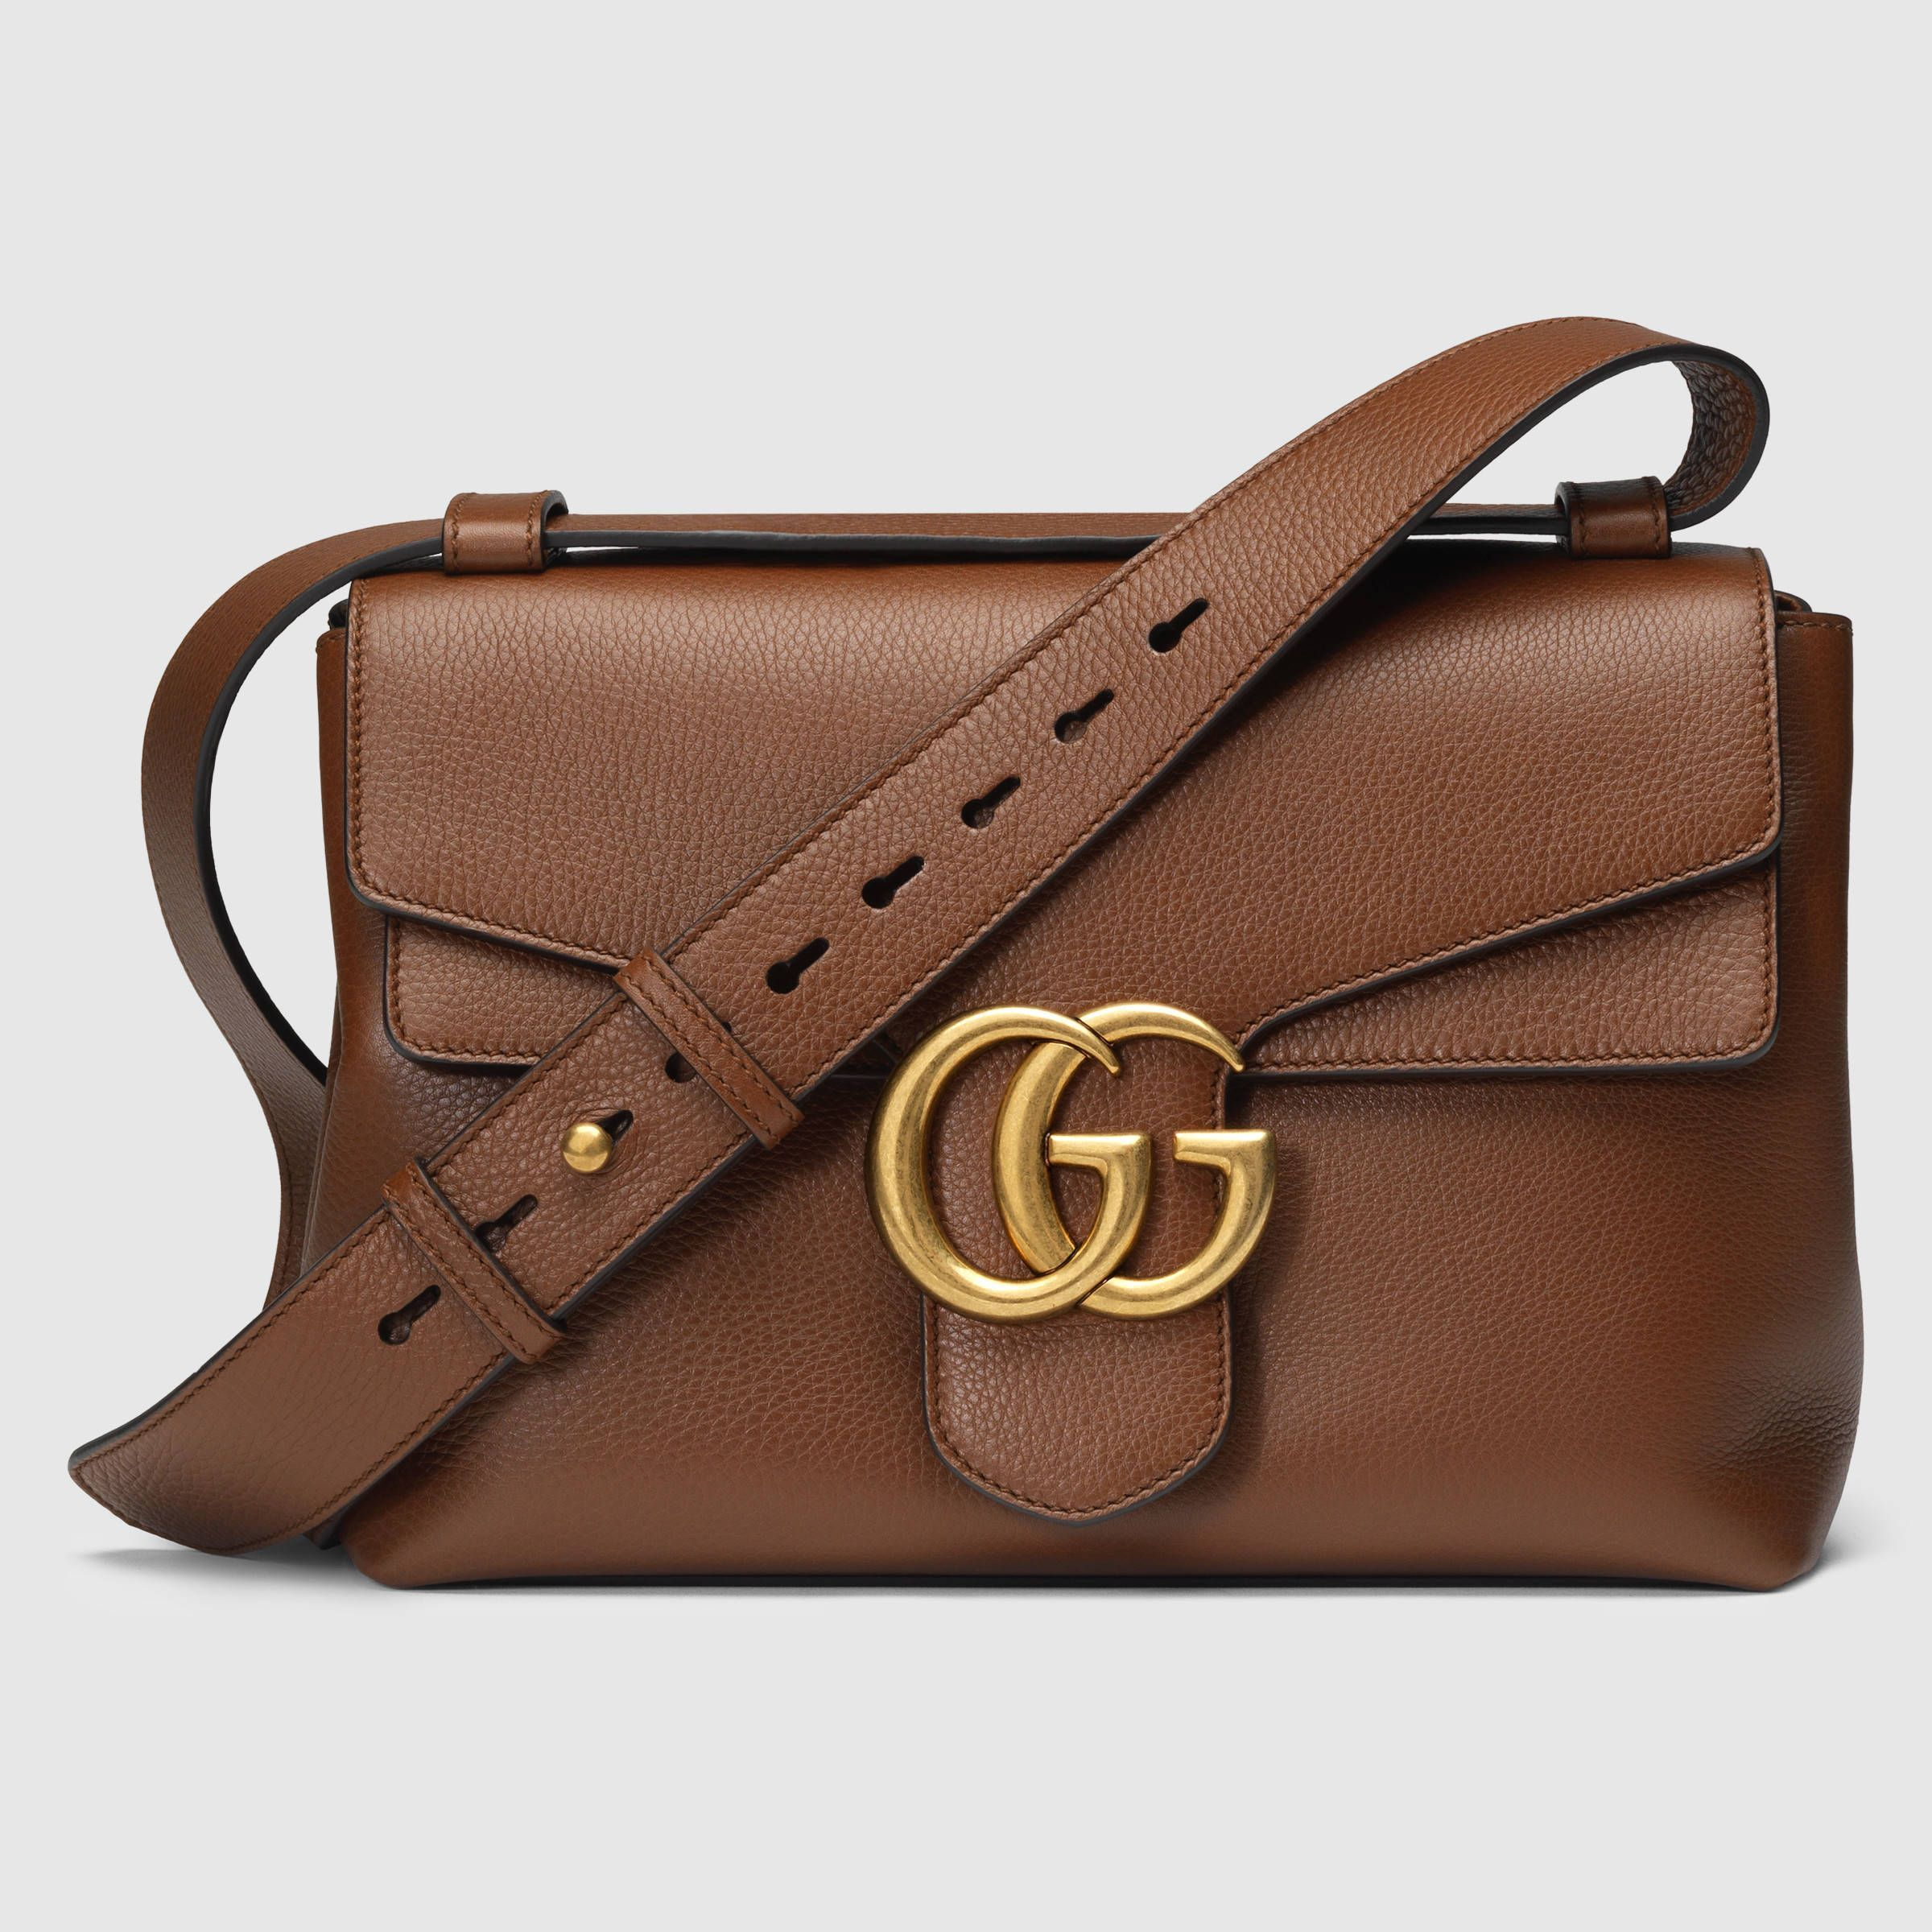 special discount of pretty cool new arrivals Gucci Women - GG Marmont leather shoulder bag ...